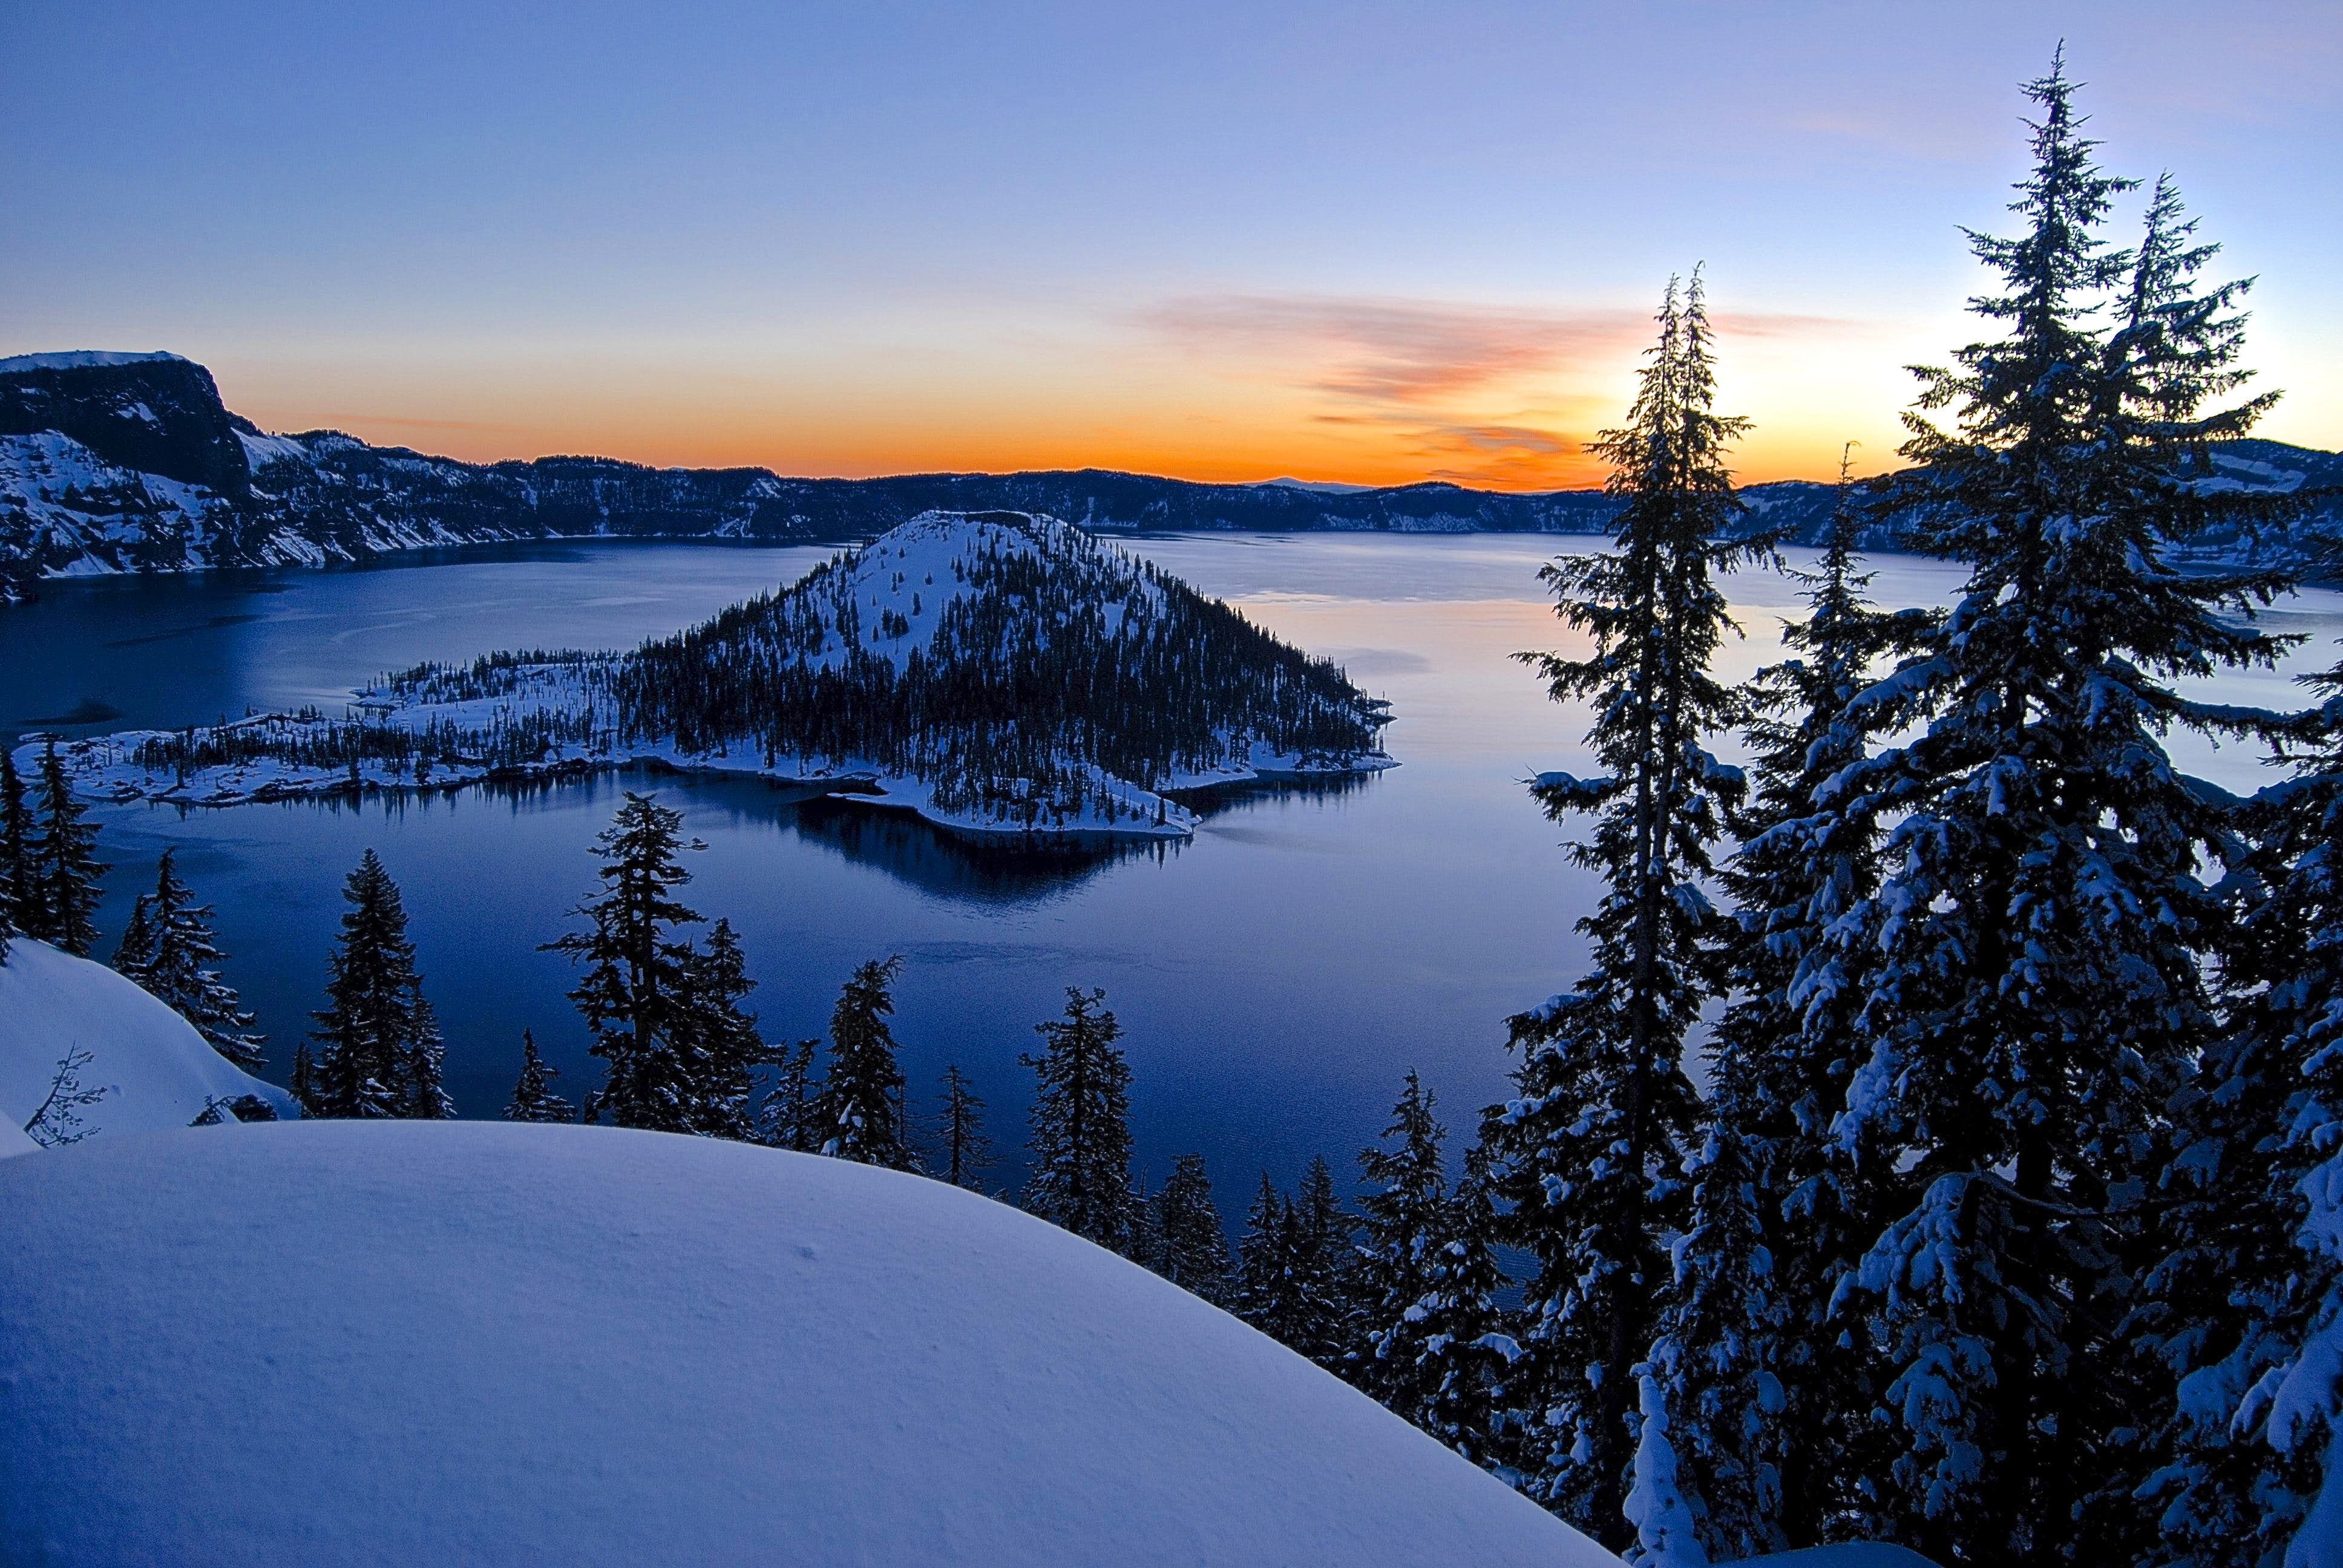 Crater Lake: March 8th, 9th 2013